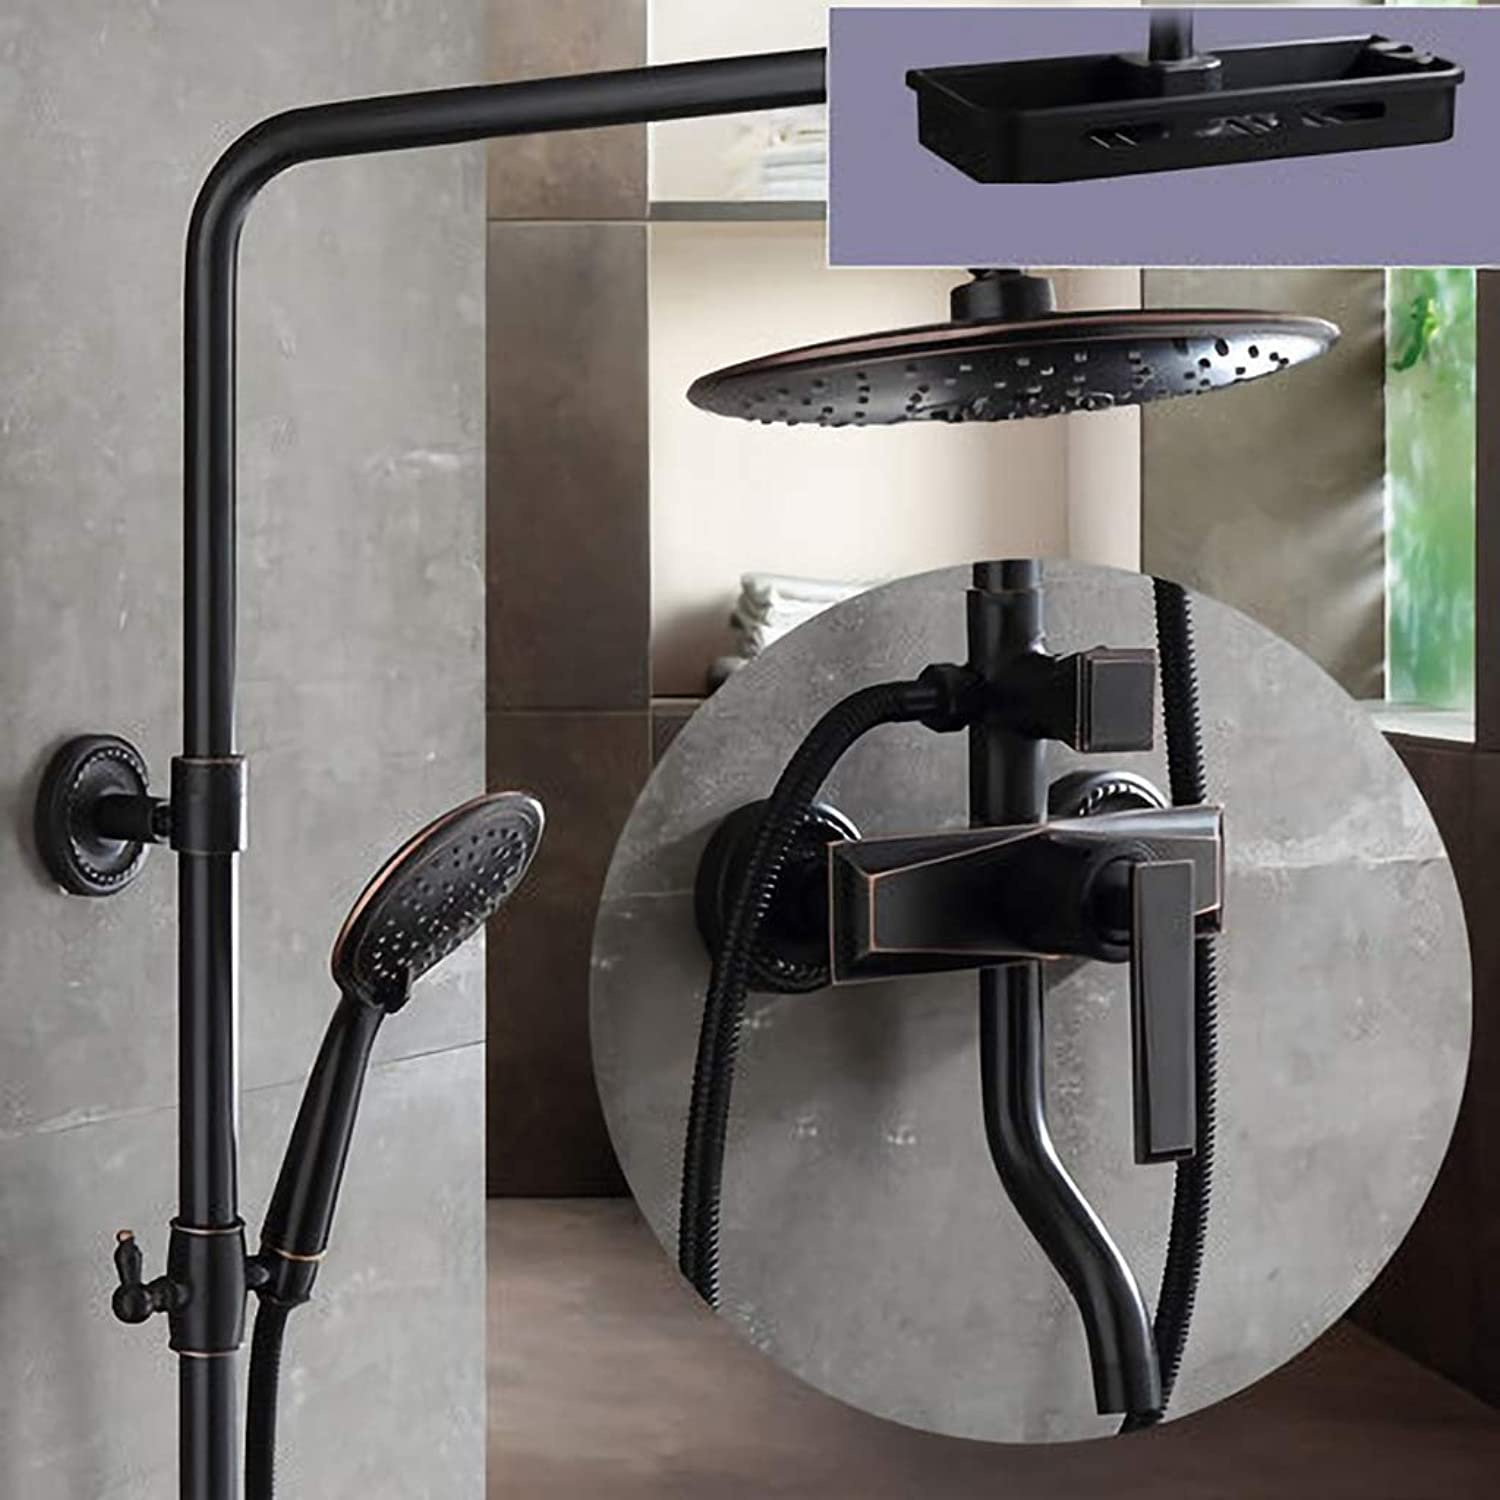 8  Rainfall Round Showerhead Bathroom Shower Mixer Taps Wall Mount Tub Shower Faucet With Hand Shower color black